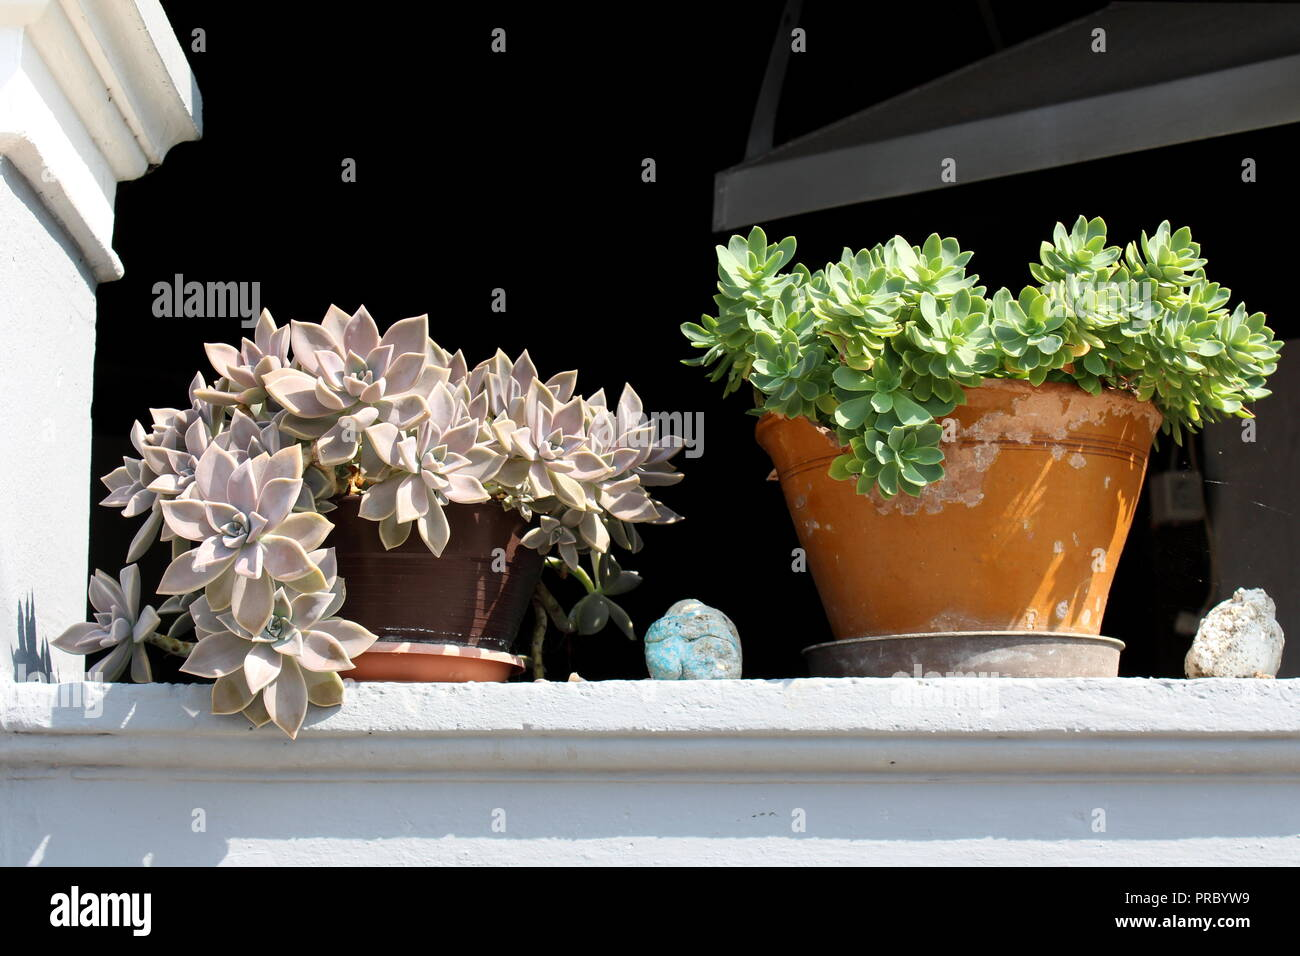 Sedum or Stonecrop perennial leaf succulent with water-storing leaves two different color plants growing from small clay flower pots on top of stone - Stock Image